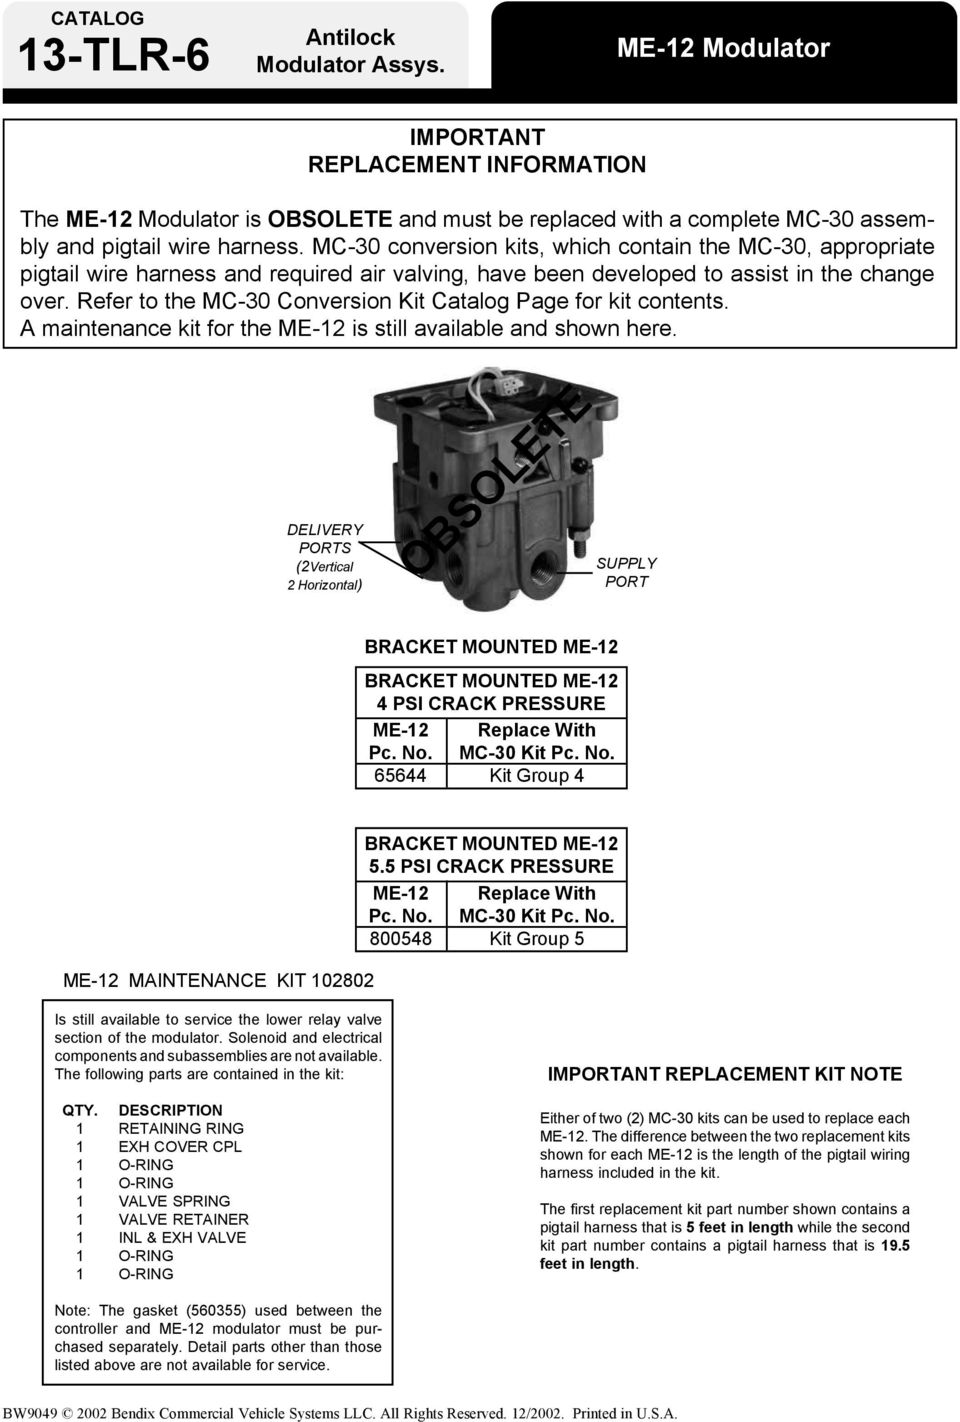 Bendix Abs For Trailers Pdf Psi Wiring Harness Mc 30 Conversion Kits Which Contain The Appropriate Pigtail Wire